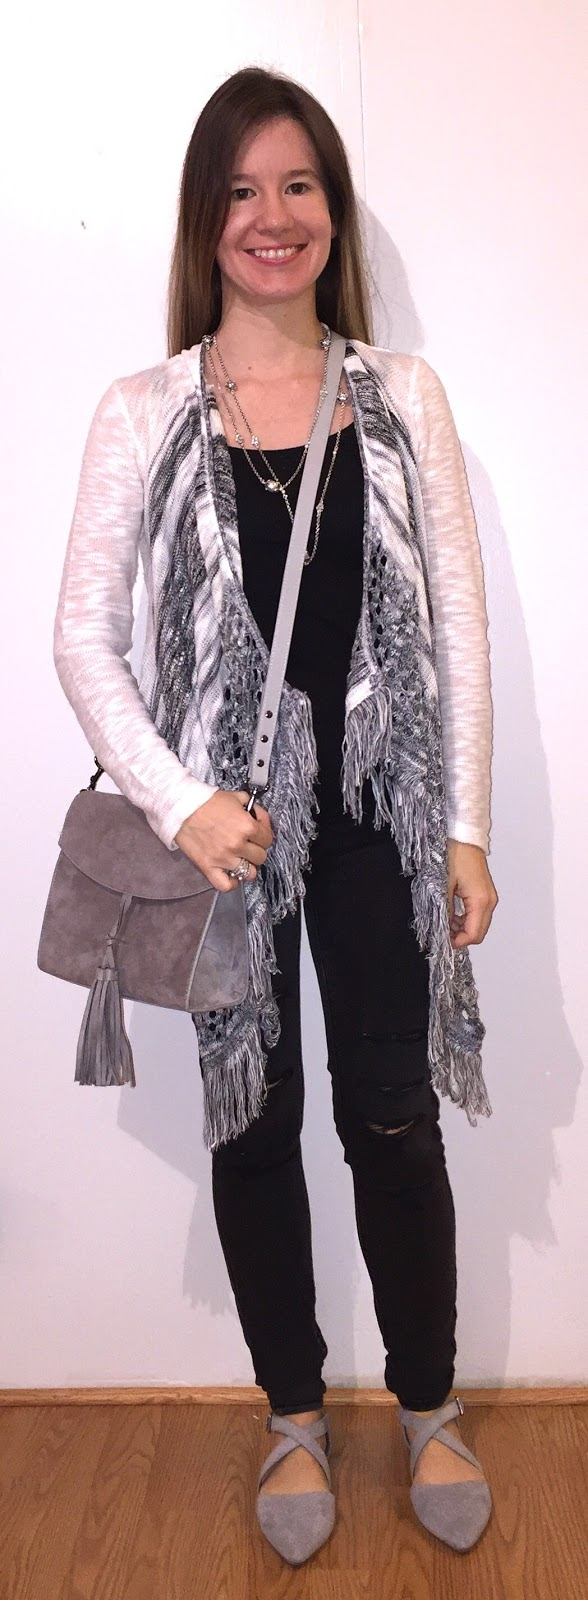 No Boundaries Fringe Shawl Cardigan Express Gray Suede Tassel Bag Charlotte Russe Gray  Dorsay Pointed Toe Flats